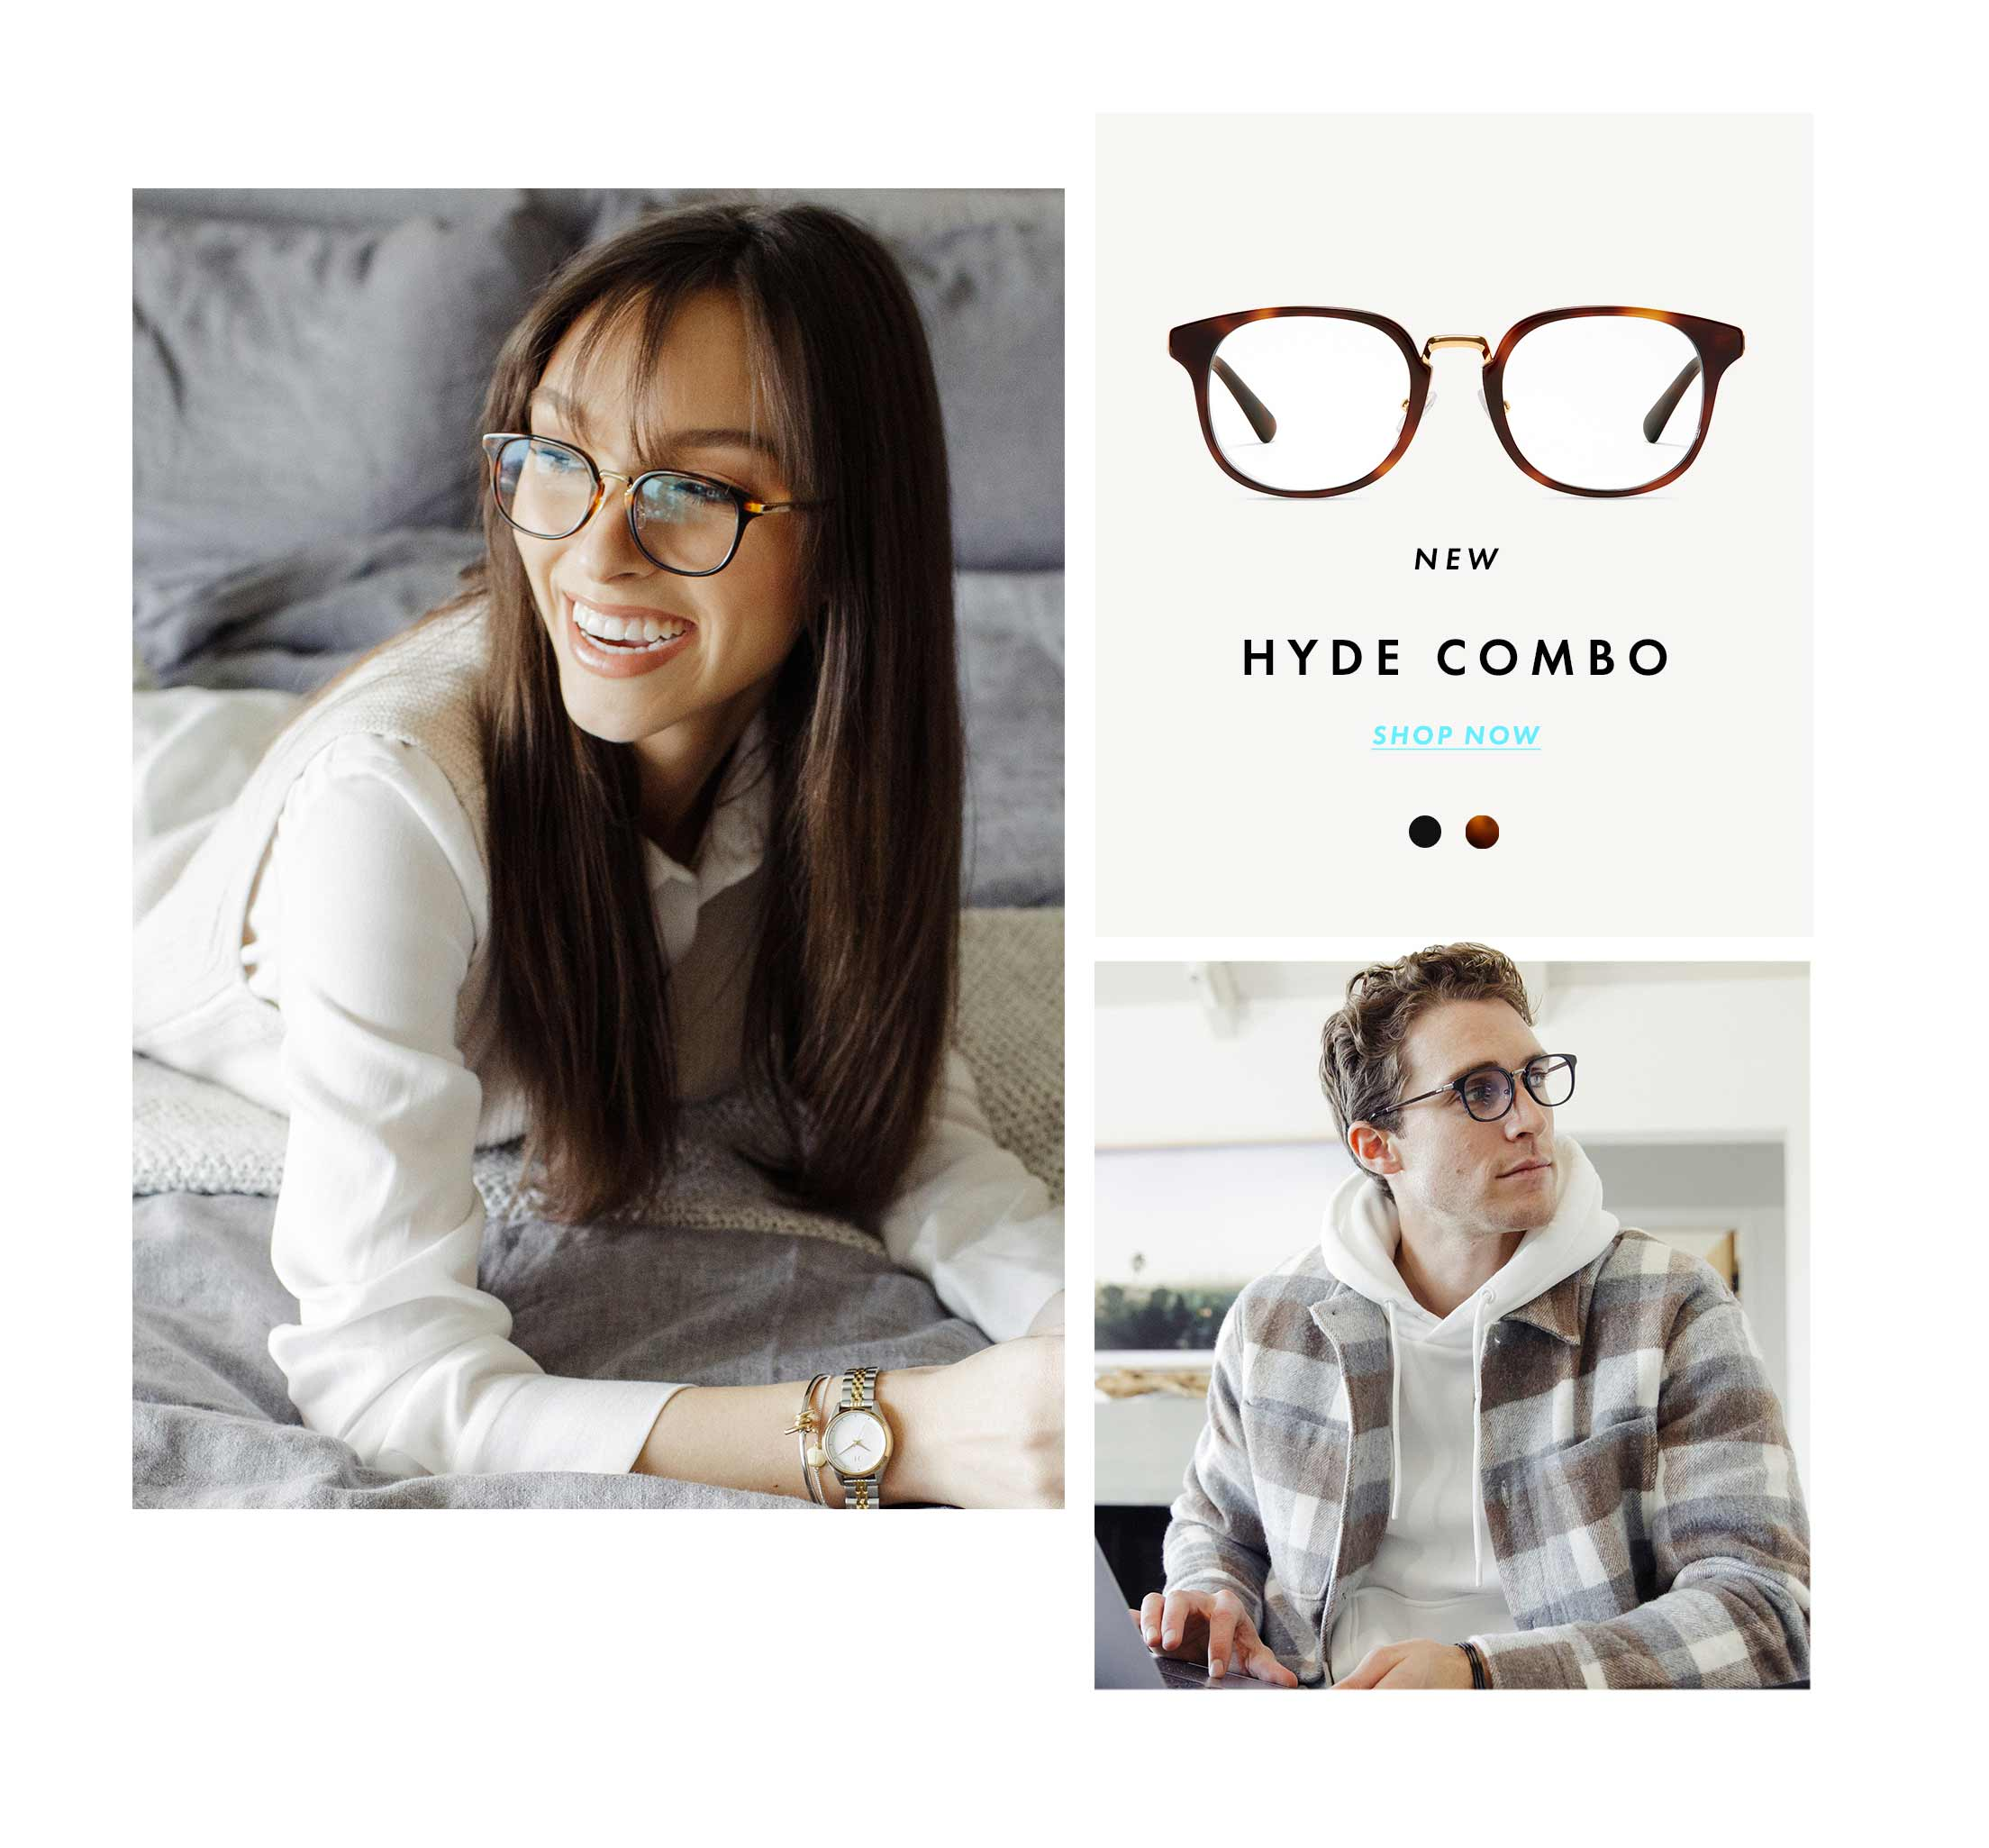 New Hyde Combo shop Now